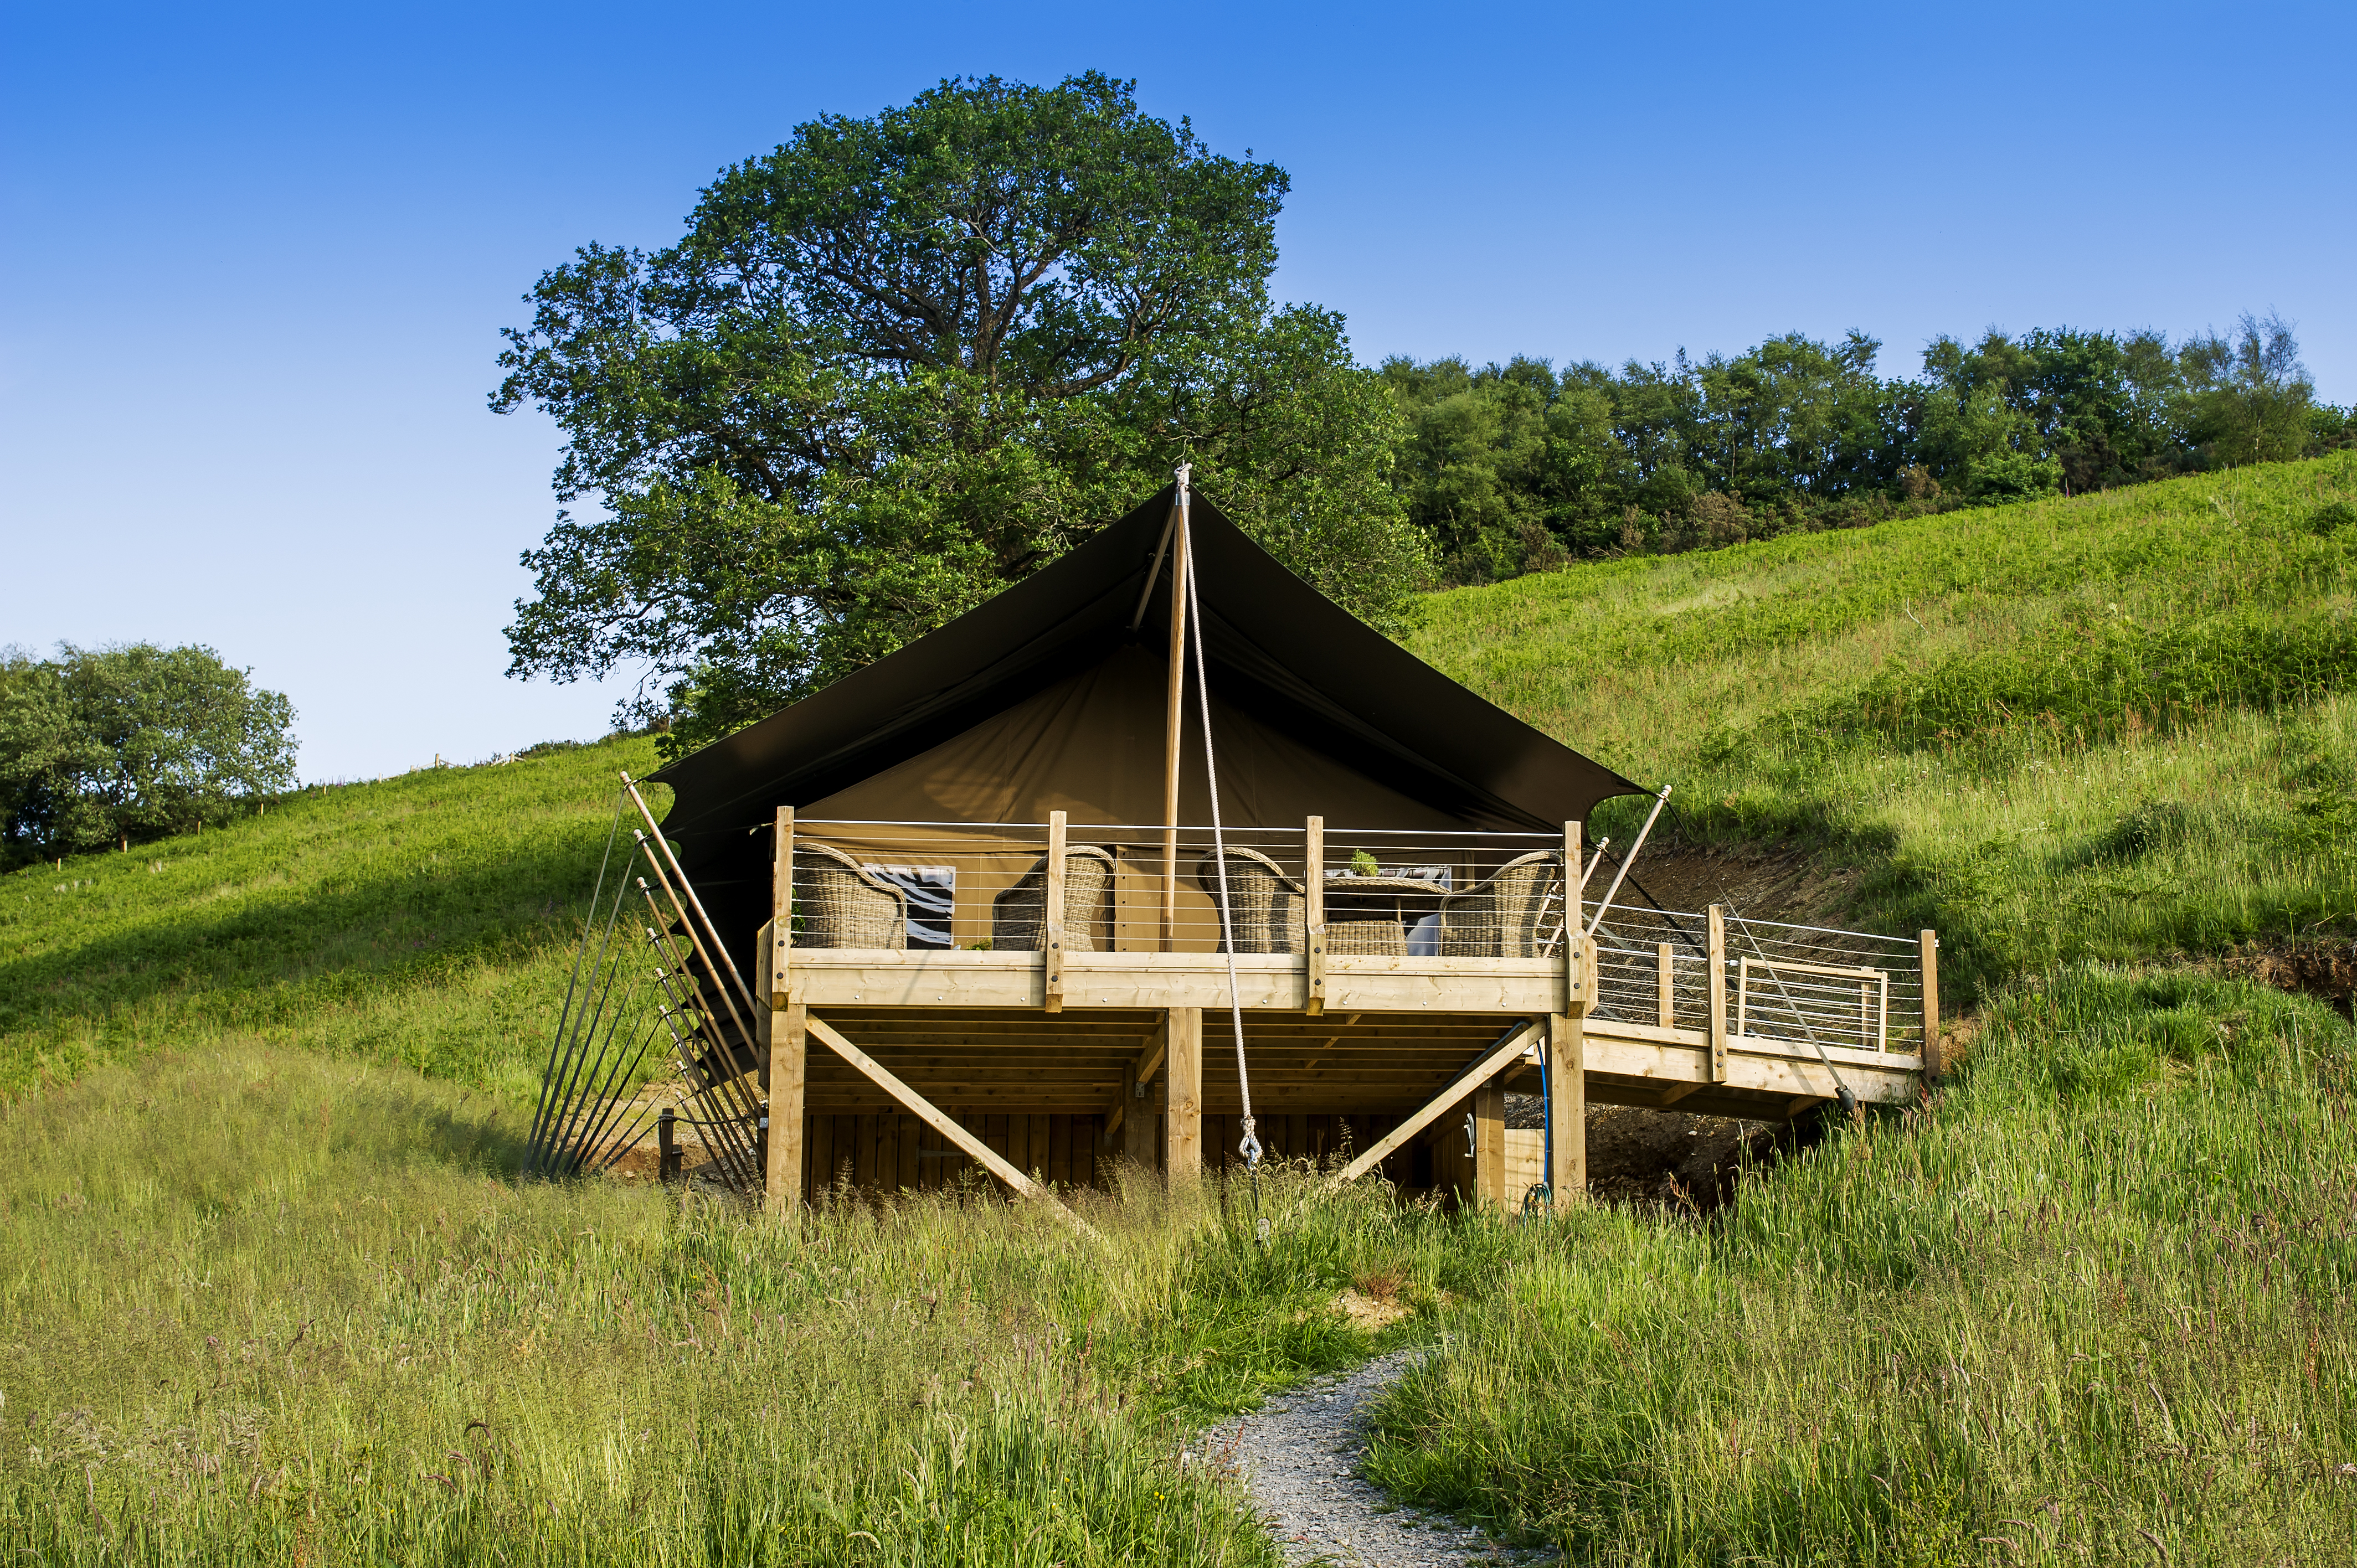 10 of the most unusual places to stay in the UK including quirky glamping sites, treehouses, eco pods, safari lodges, shepherd's huts and converted double decker buses! Click through to read more...